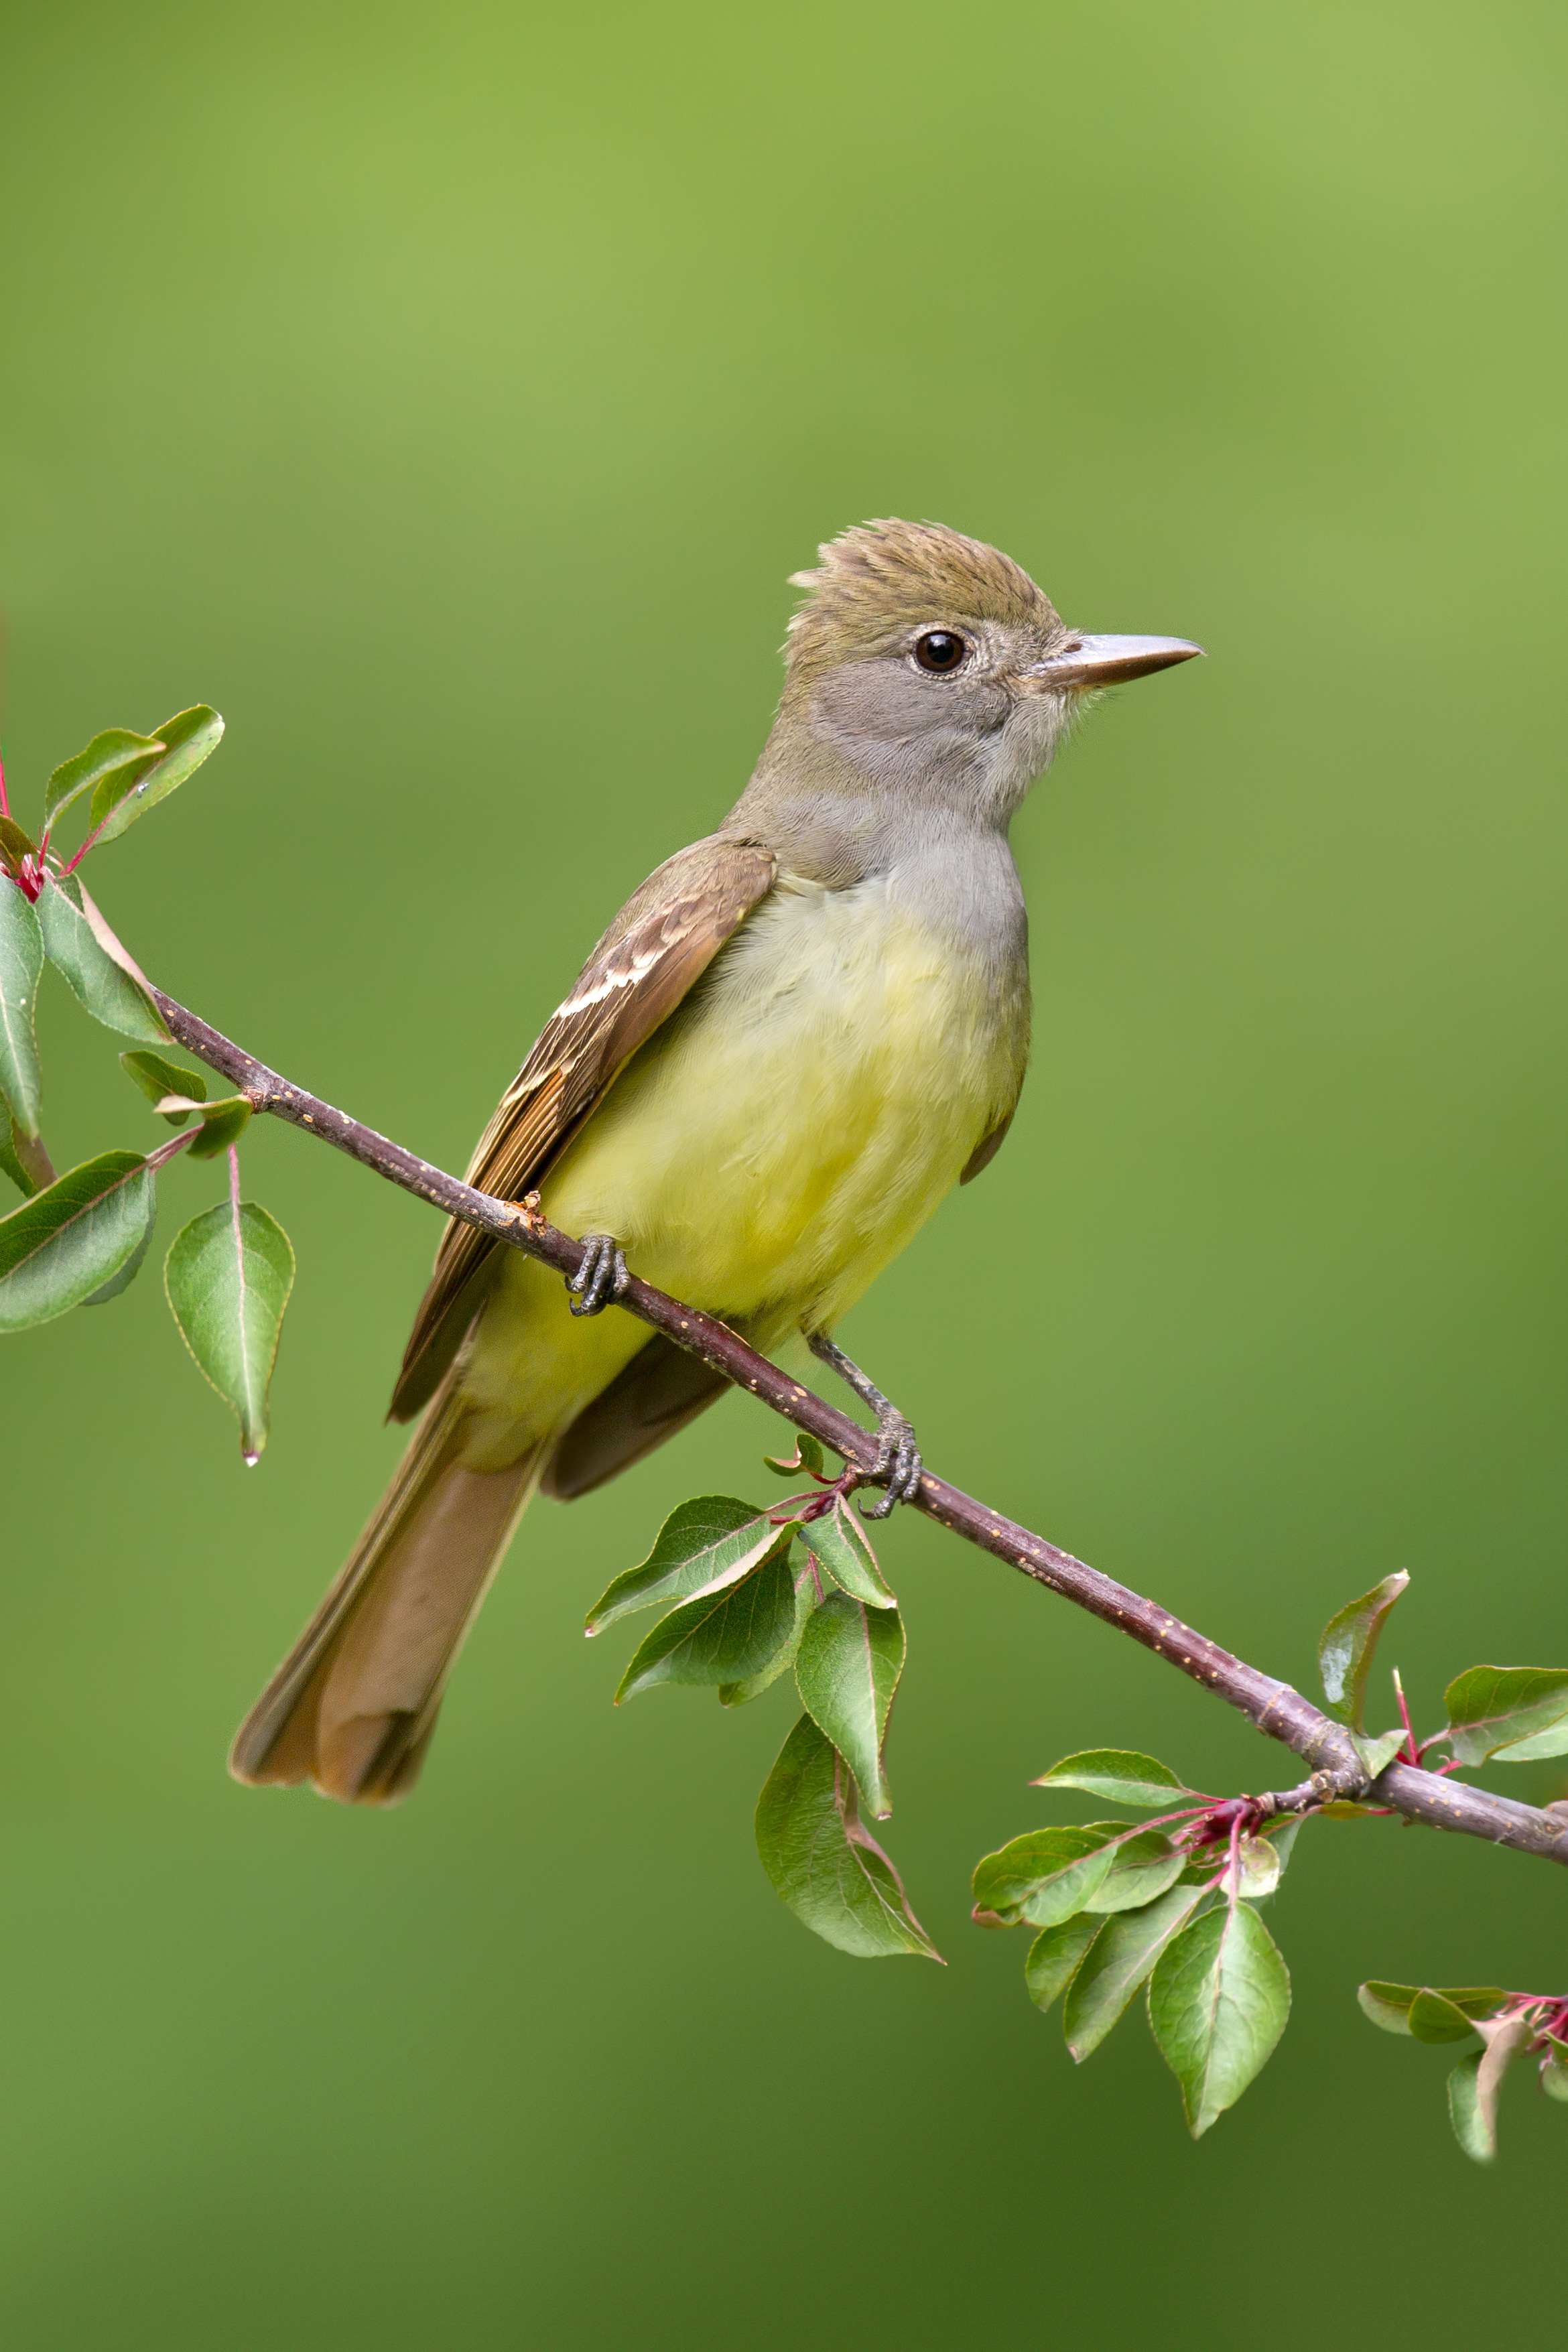 great-crested_flycatcher_USA_Ohio_00401845b.jpg